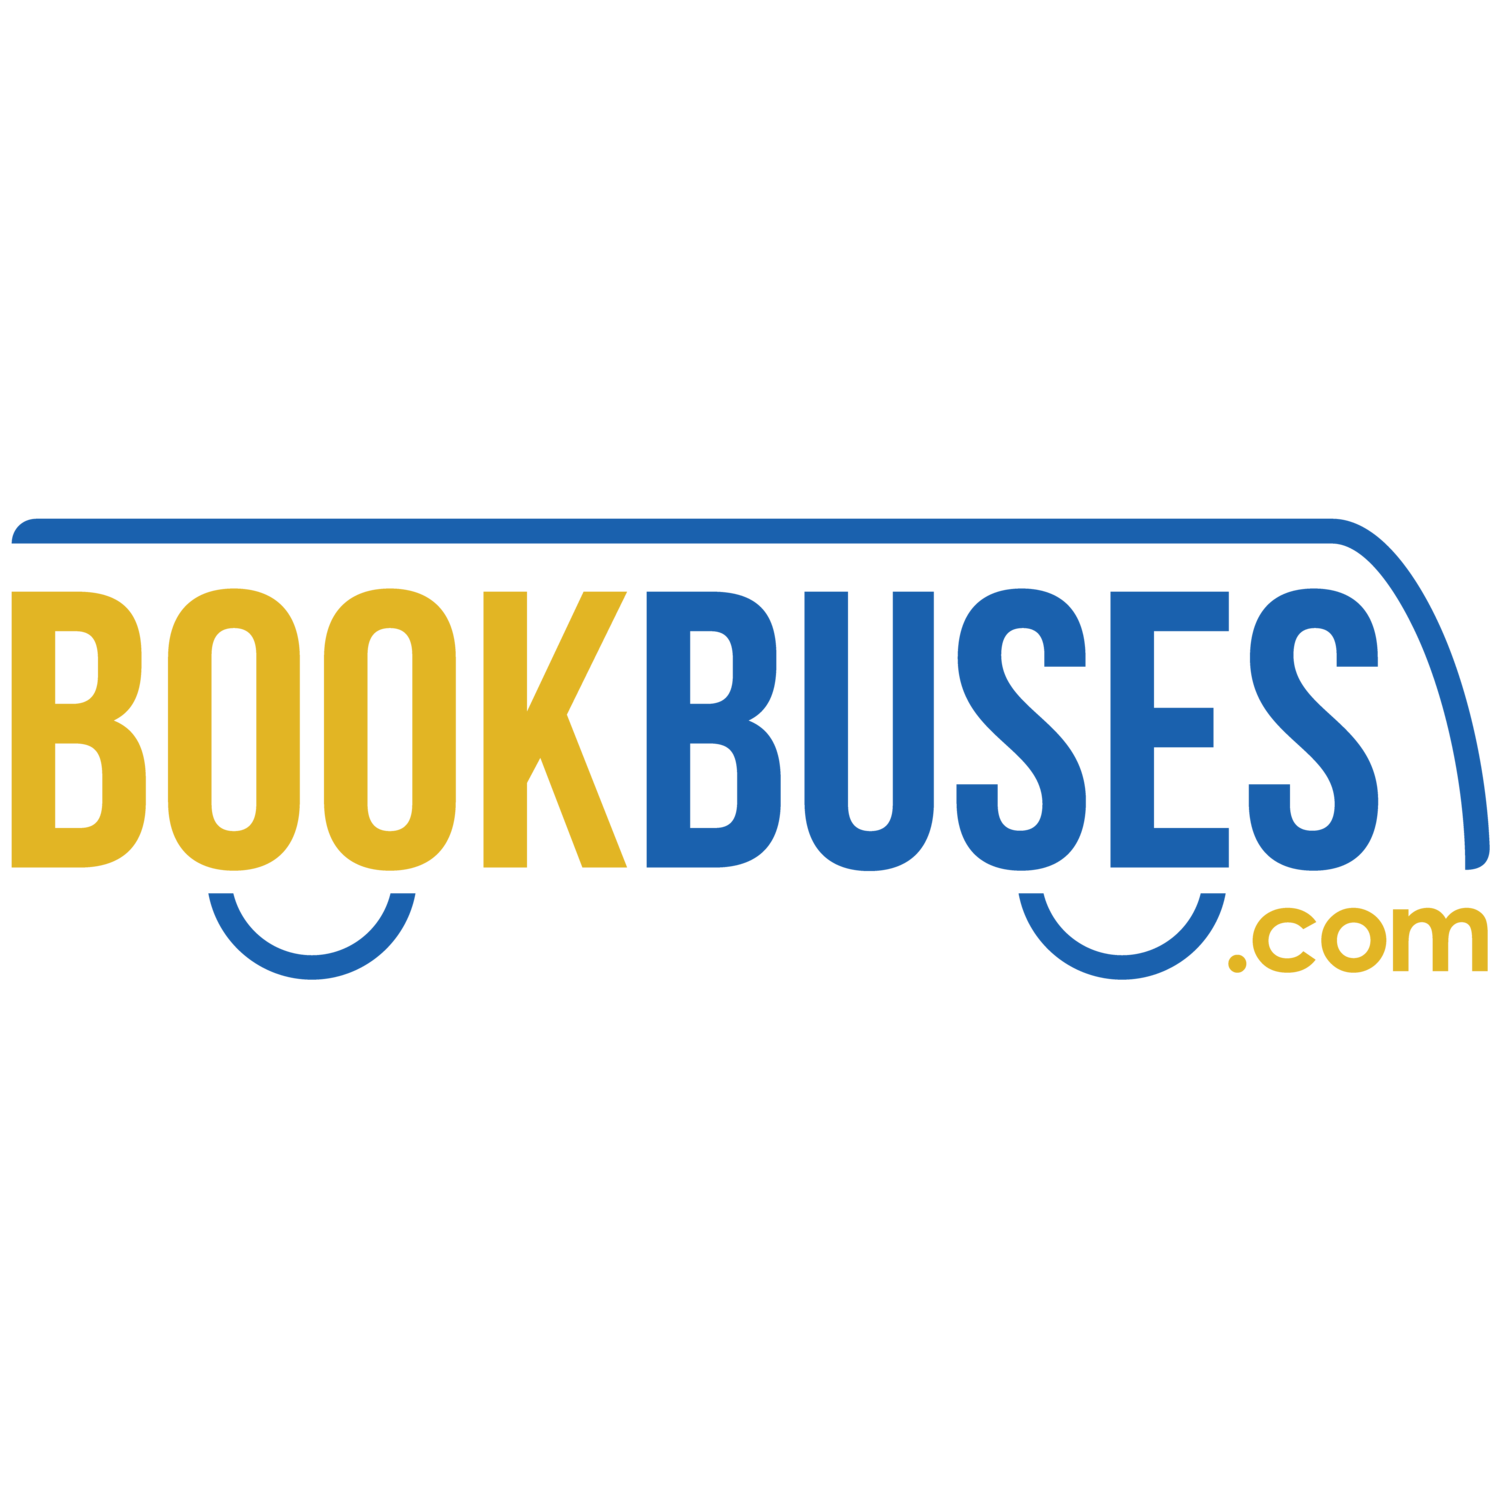 Bookbuses: Charter Bus & School Bus Rental Services Nationwide